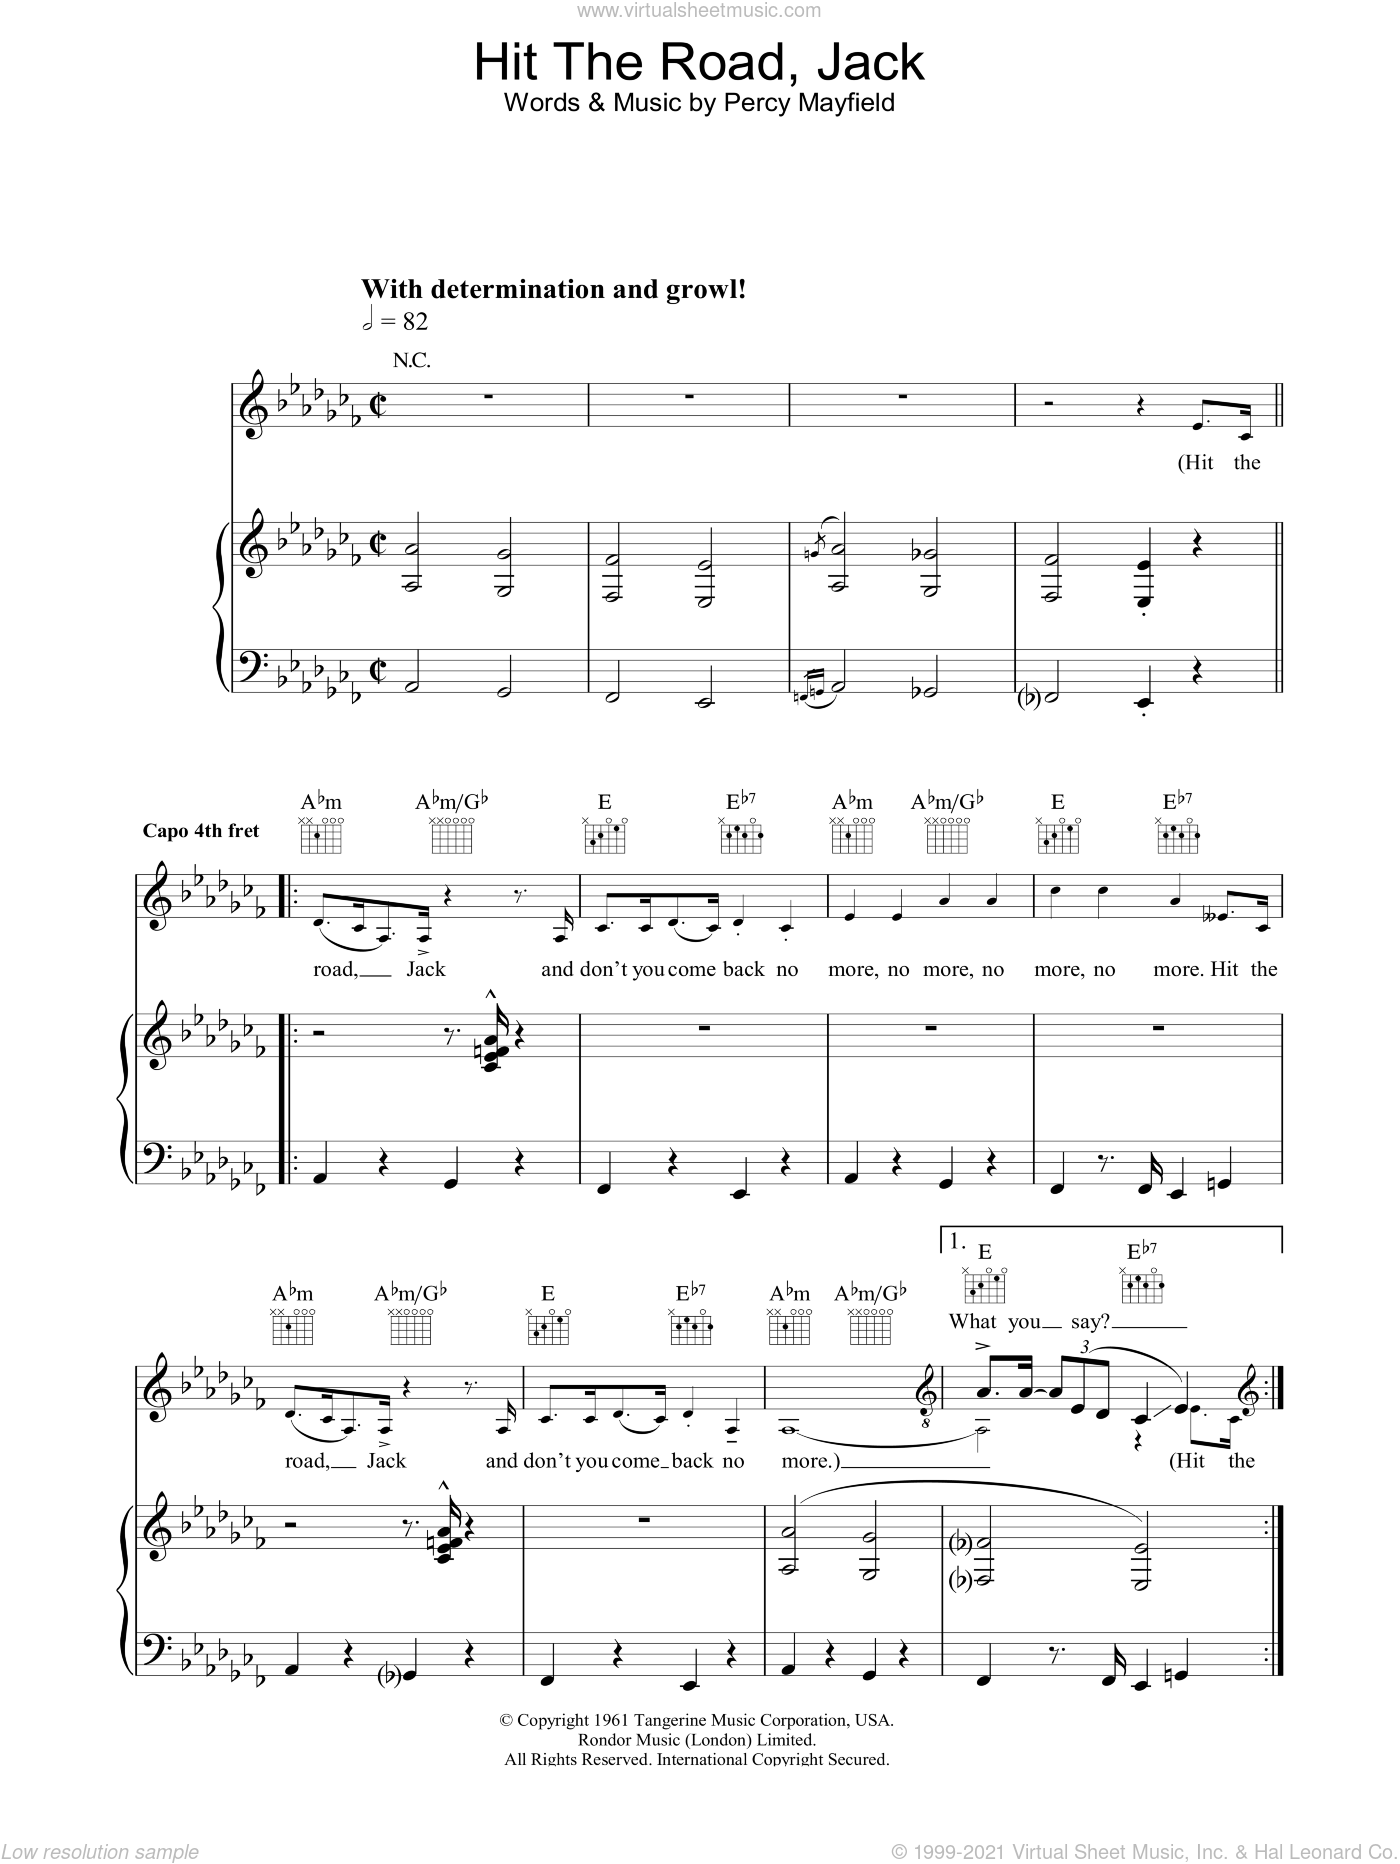 Hit The Road Jack sheet music for voice, piano or guitar by Ray Charles and Percy Mayfield, intermediate skill level